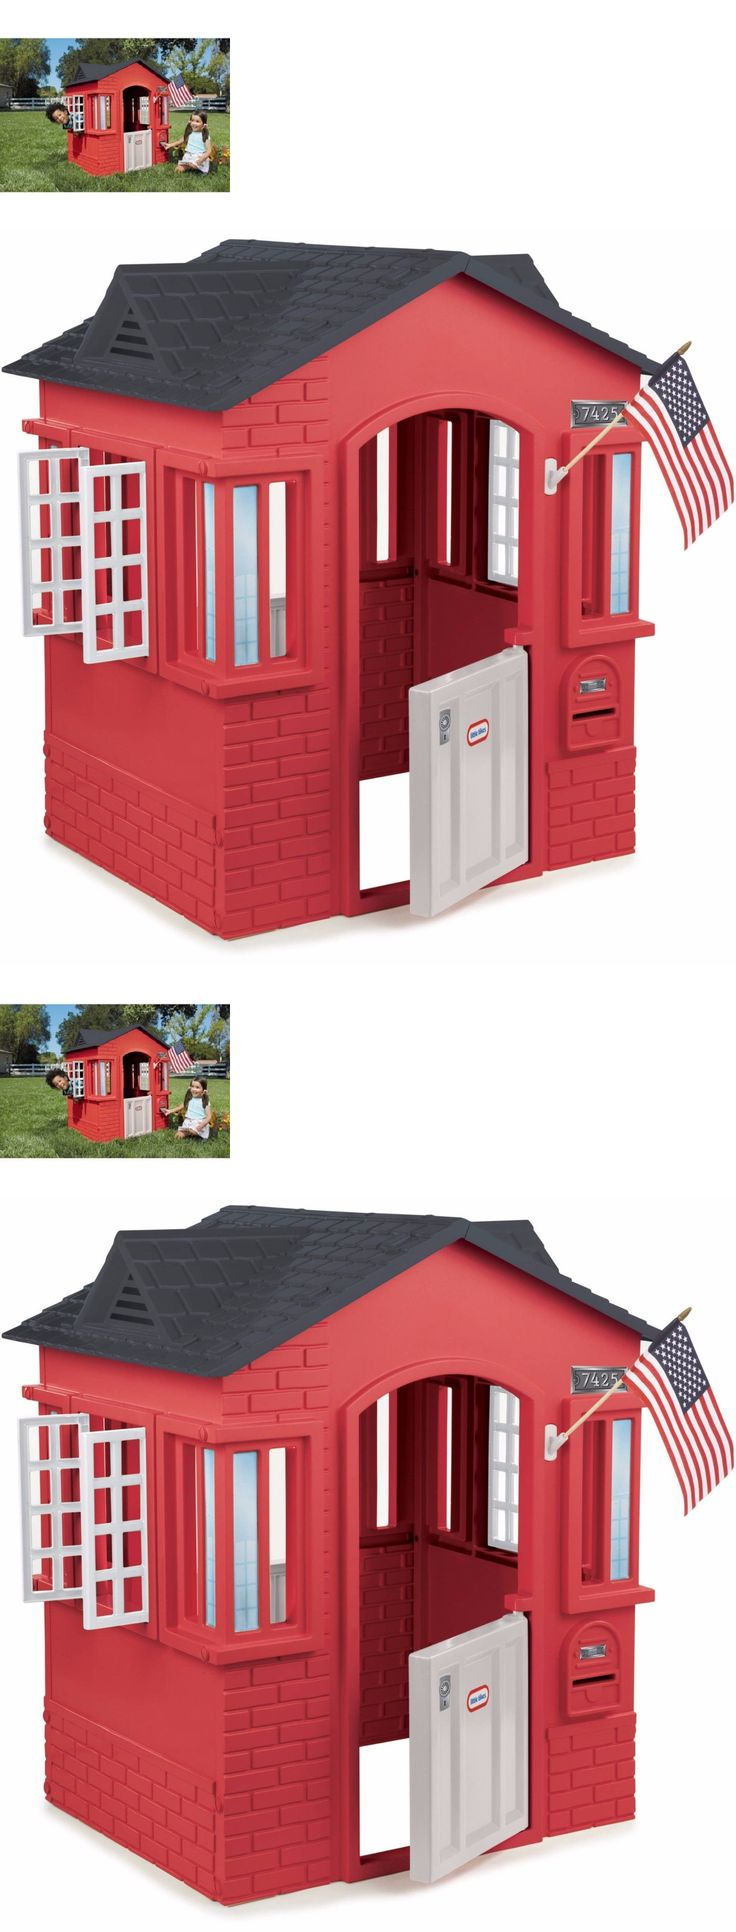 Permanent Playhouses 145995: Little Tikes Kids Cape Cottage Playhouse Red Outdoor Indoor Backyard Pretend Fun -> BUY IT NOW ONLY: $136.96 on eBay!